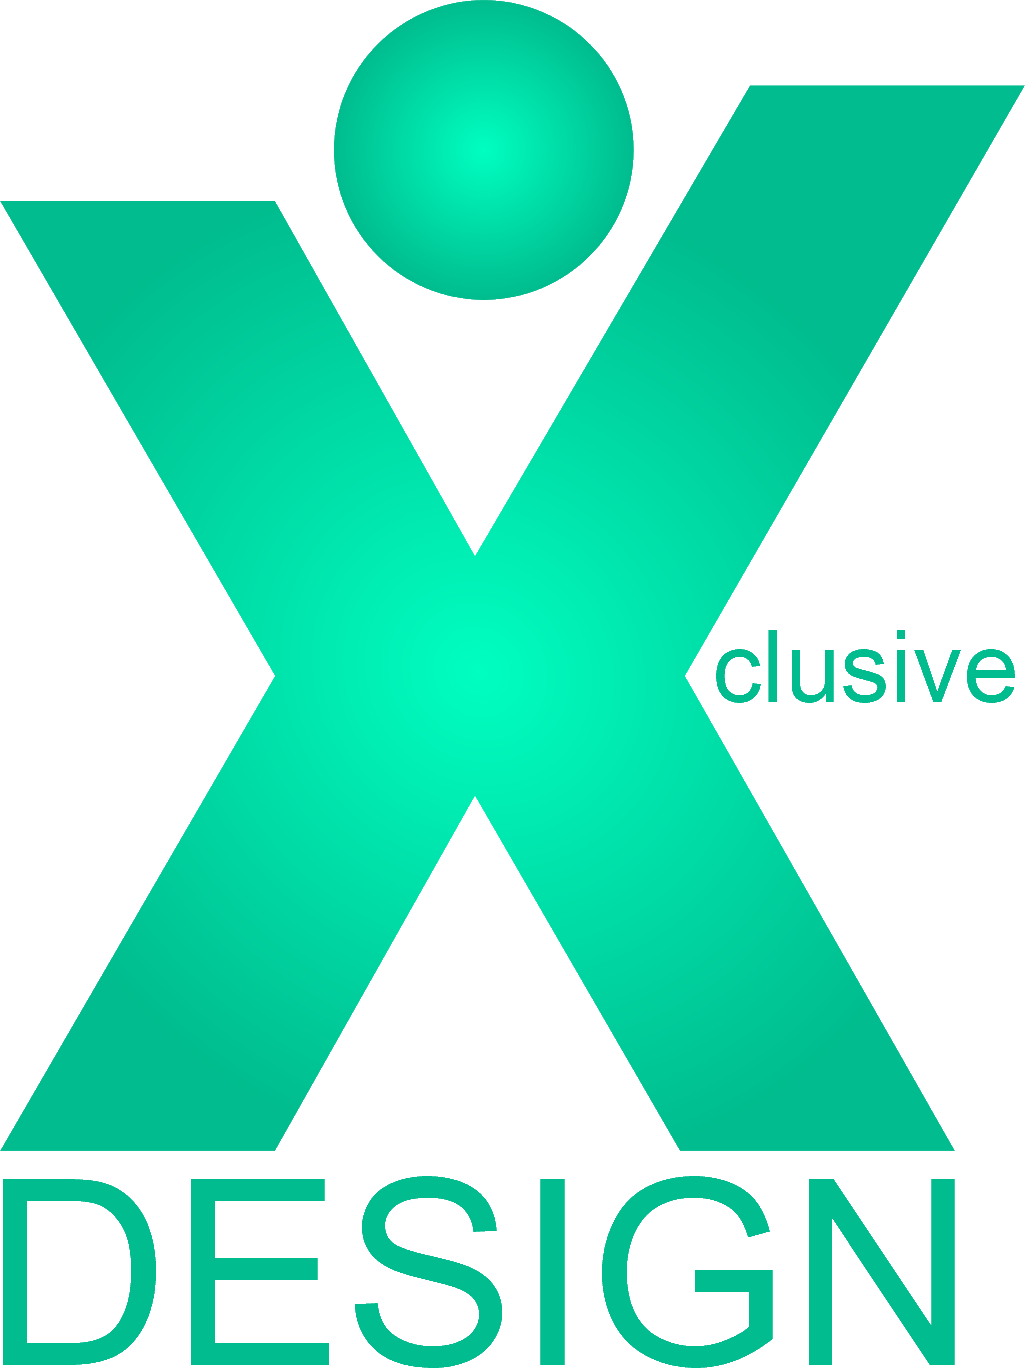 Xclusive Design - Websites op maat